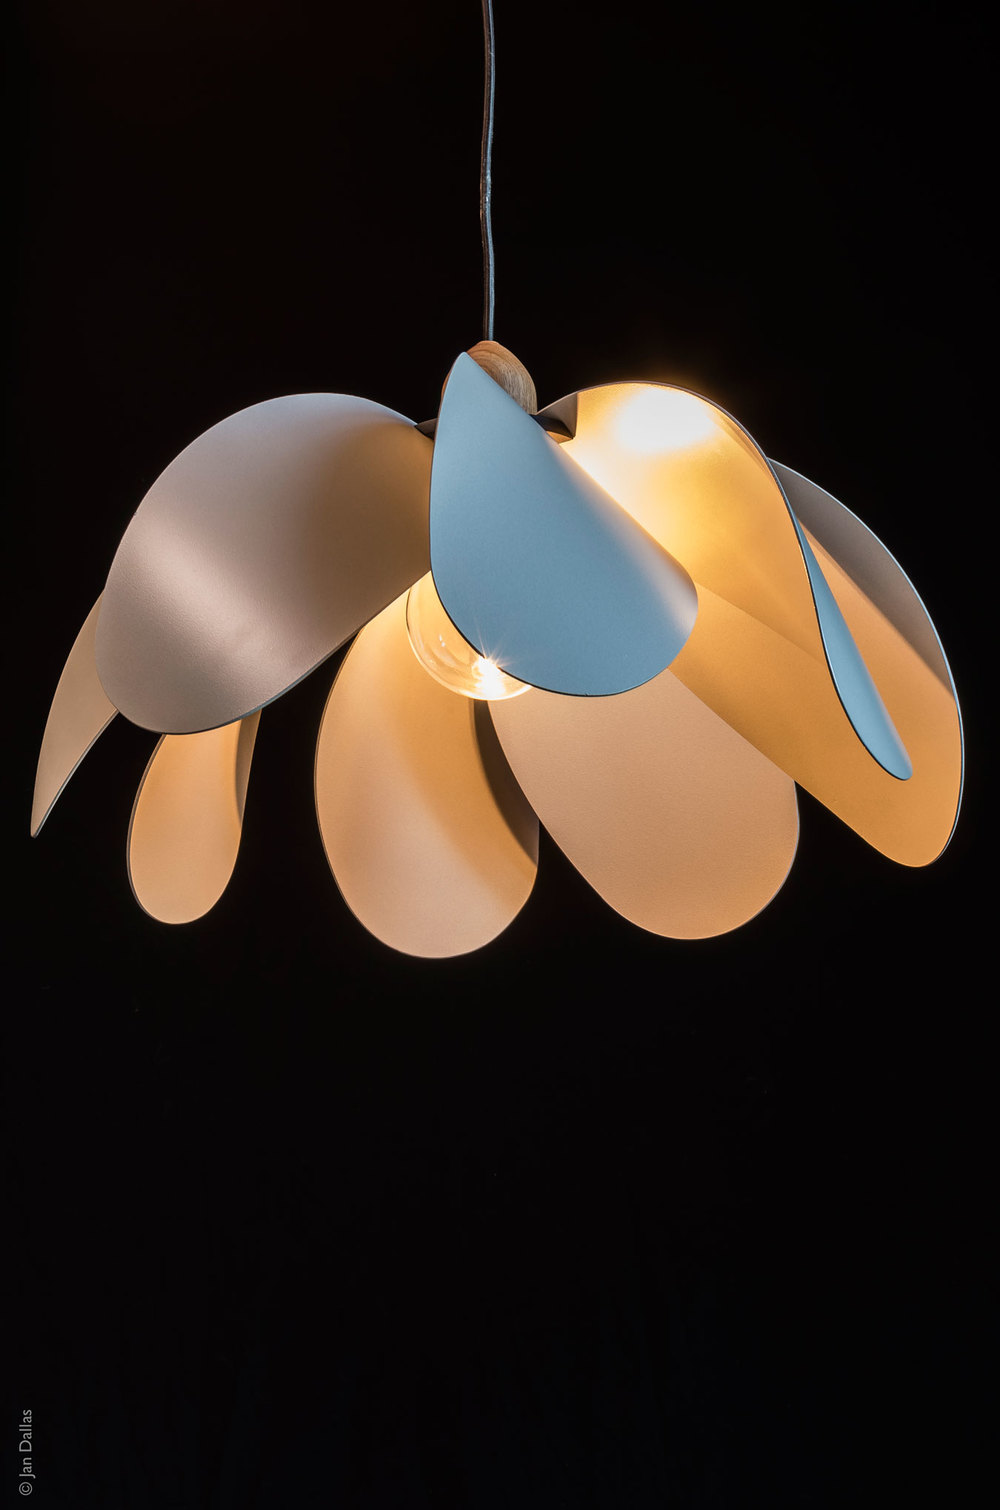 Propeller_and_Propeller_Droop_Pendant_Lights_Established_5.jpg